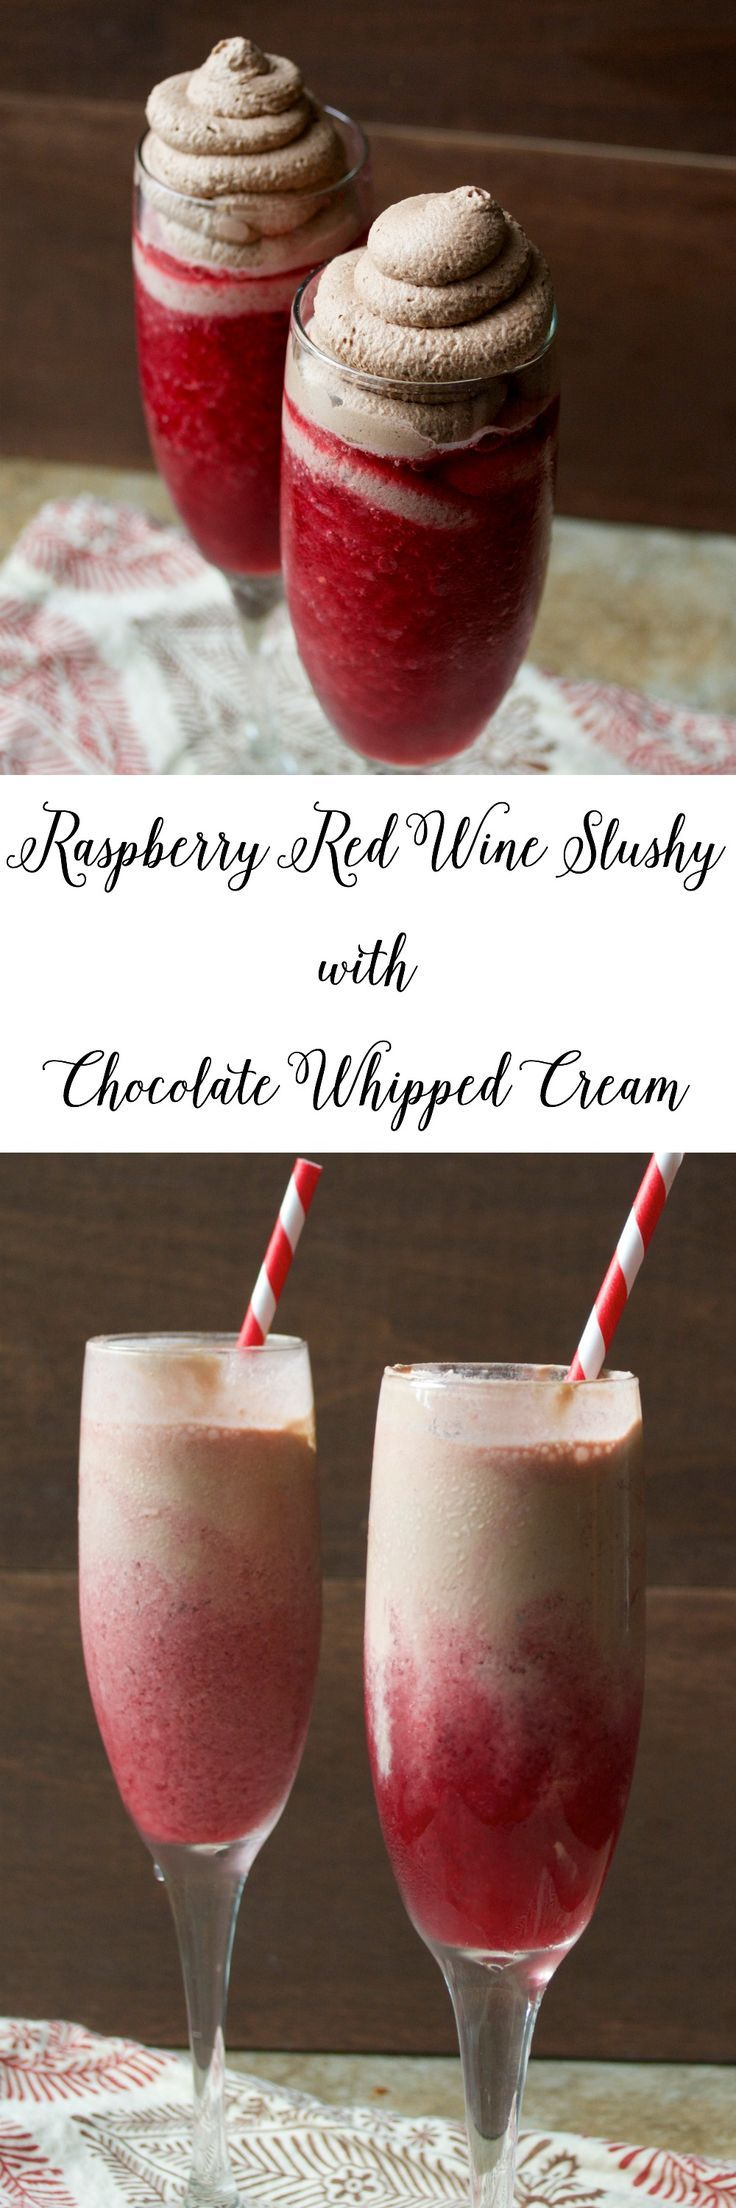 Raspberry Red Wine Slushy With Chocolate Whipped Cream Www Maebells Com Chocolate Whipped Cream Slushies Yummy Drinks